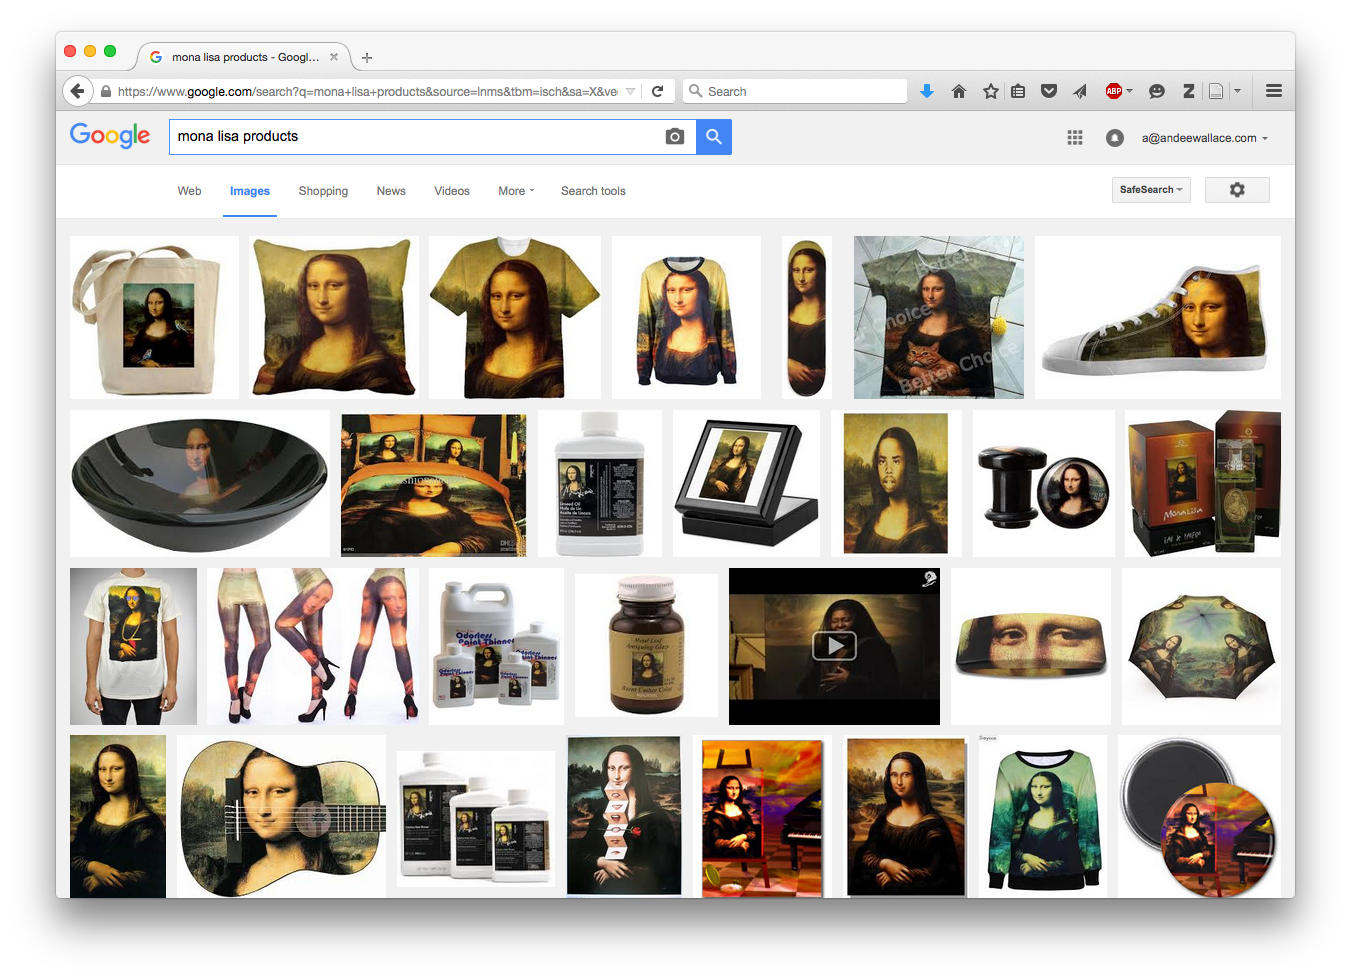 "Google image search for ""mona lisa products"": https://www.google.com/search?q=mona+lisa+products&source=lnms&tbm=isch&sa=X&ved=0CAcQ_AUoAWoVChMIxebZuLvWyAIVwscUCh14uQ-8&biw=1384&bih=835&dpr=0.9"